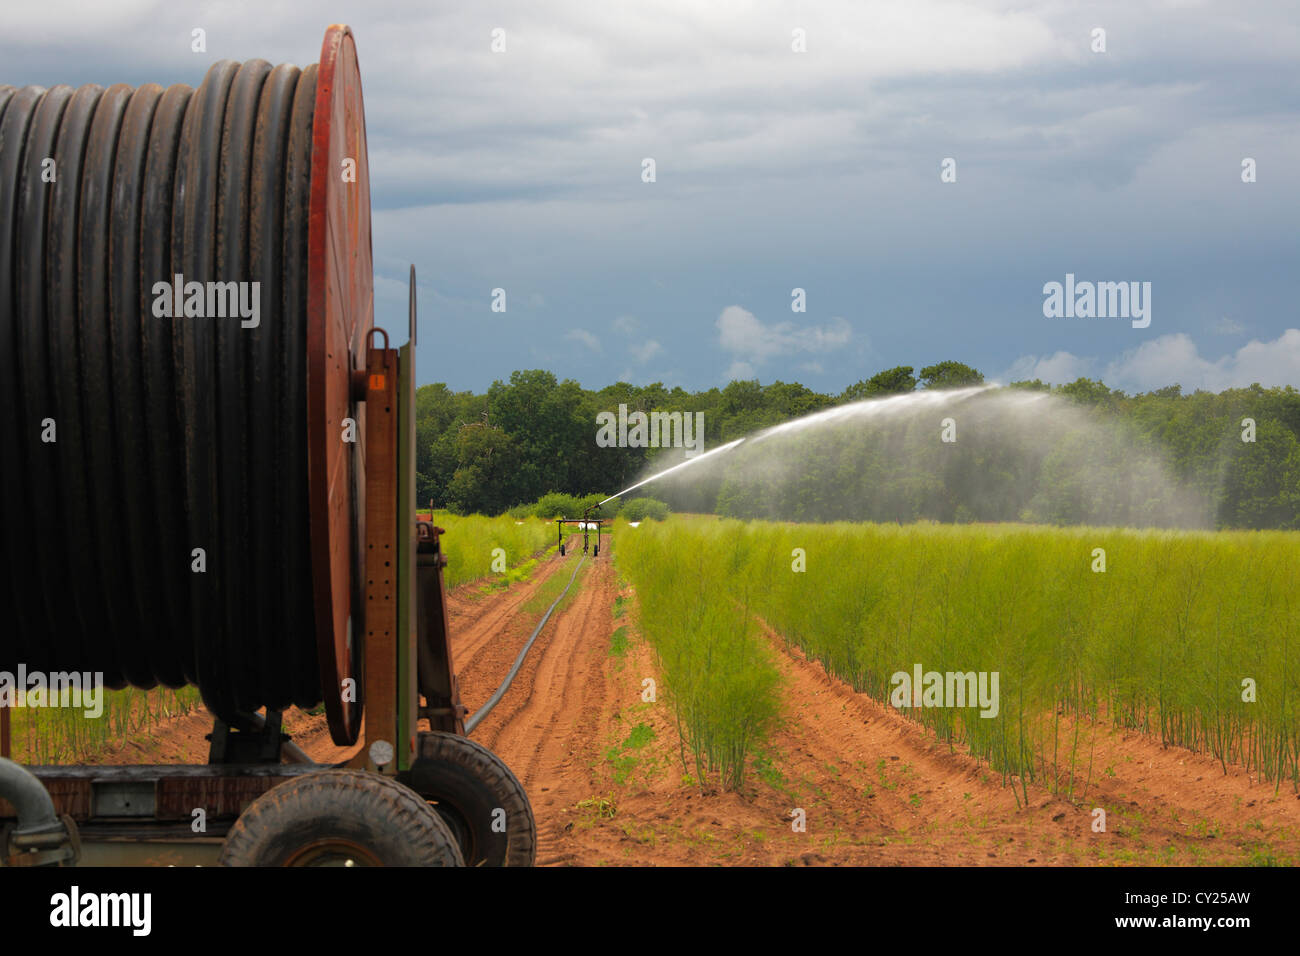 irrigation sprayer in an asparagus field - Stock Image